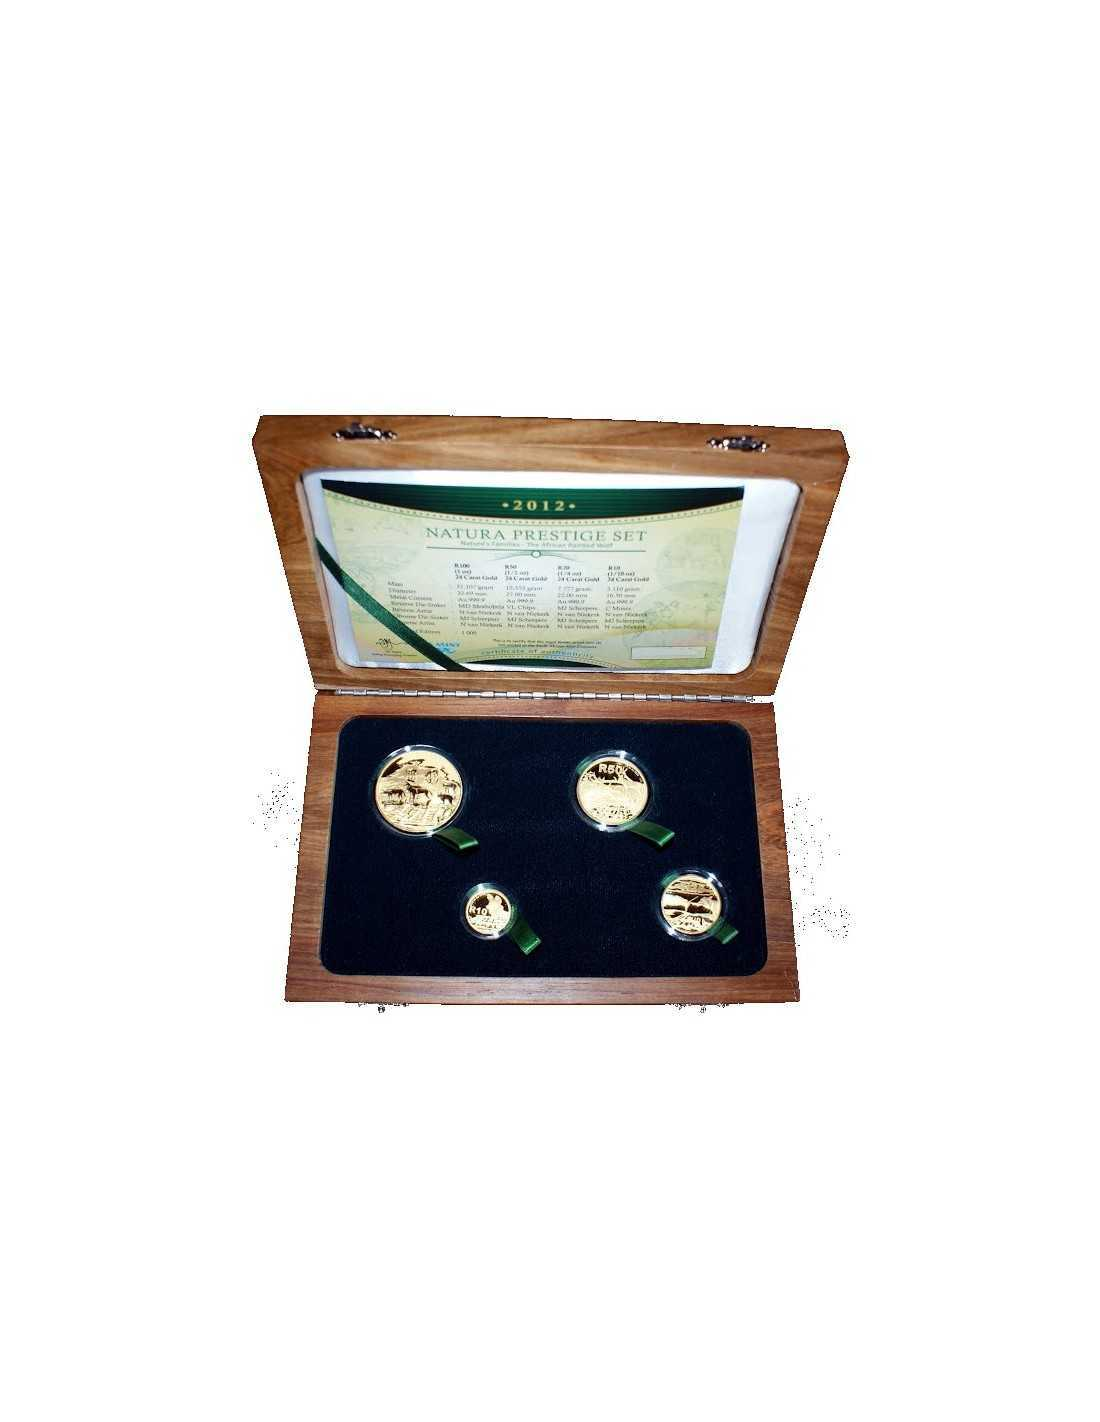 Natura 2012 African Painted Wolfprestige Set 4 Coin Set